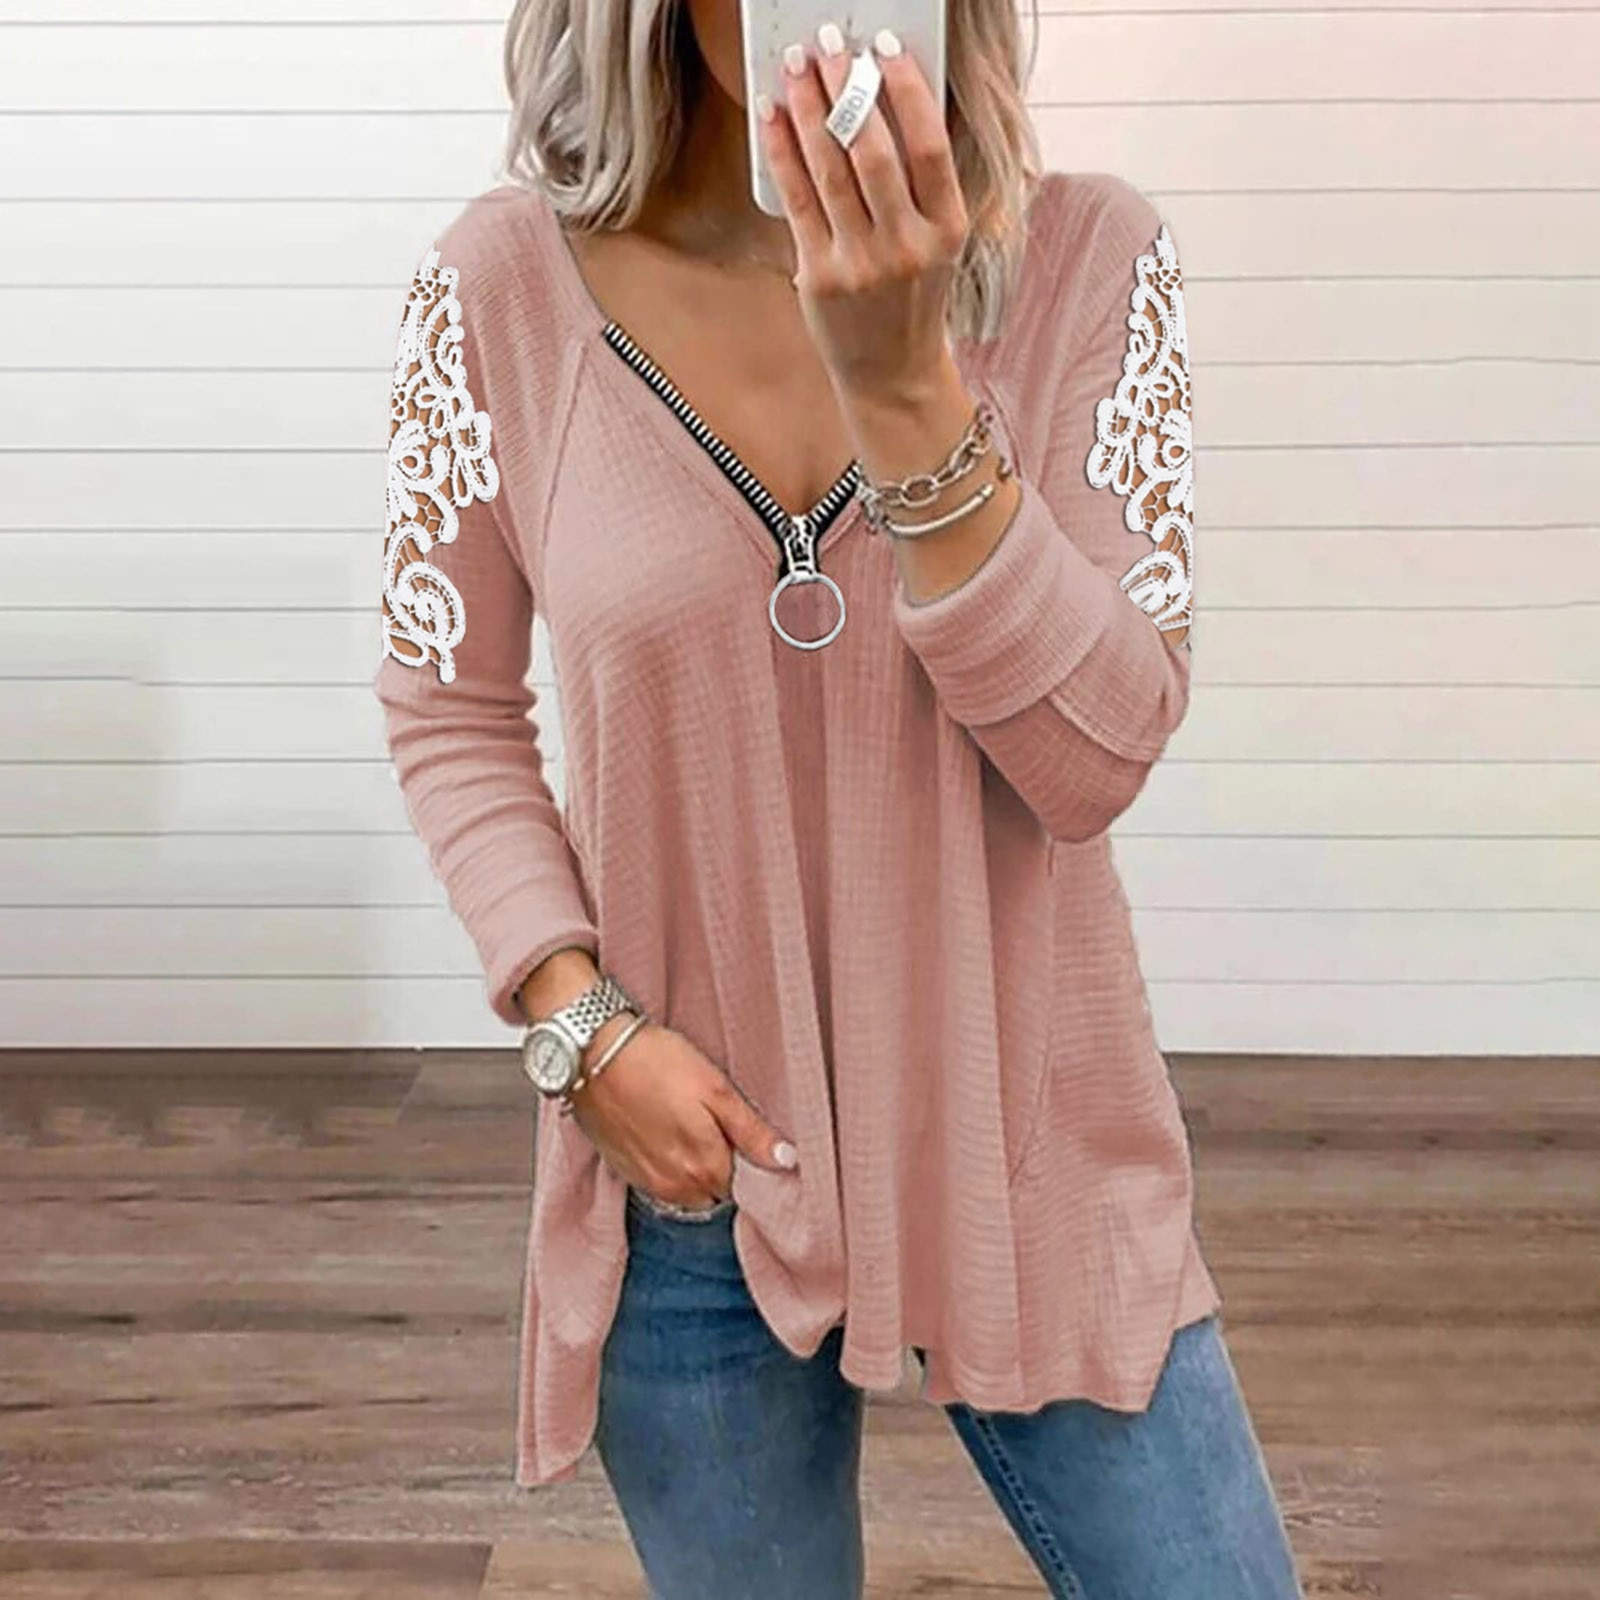 long sleeve scrawl printed v neck tee V-neck Lace Sleeve Loose Solid Color Casual Female Tee Shirts Top Ladies Long Sleeve Blouse Top Sexy Zipper